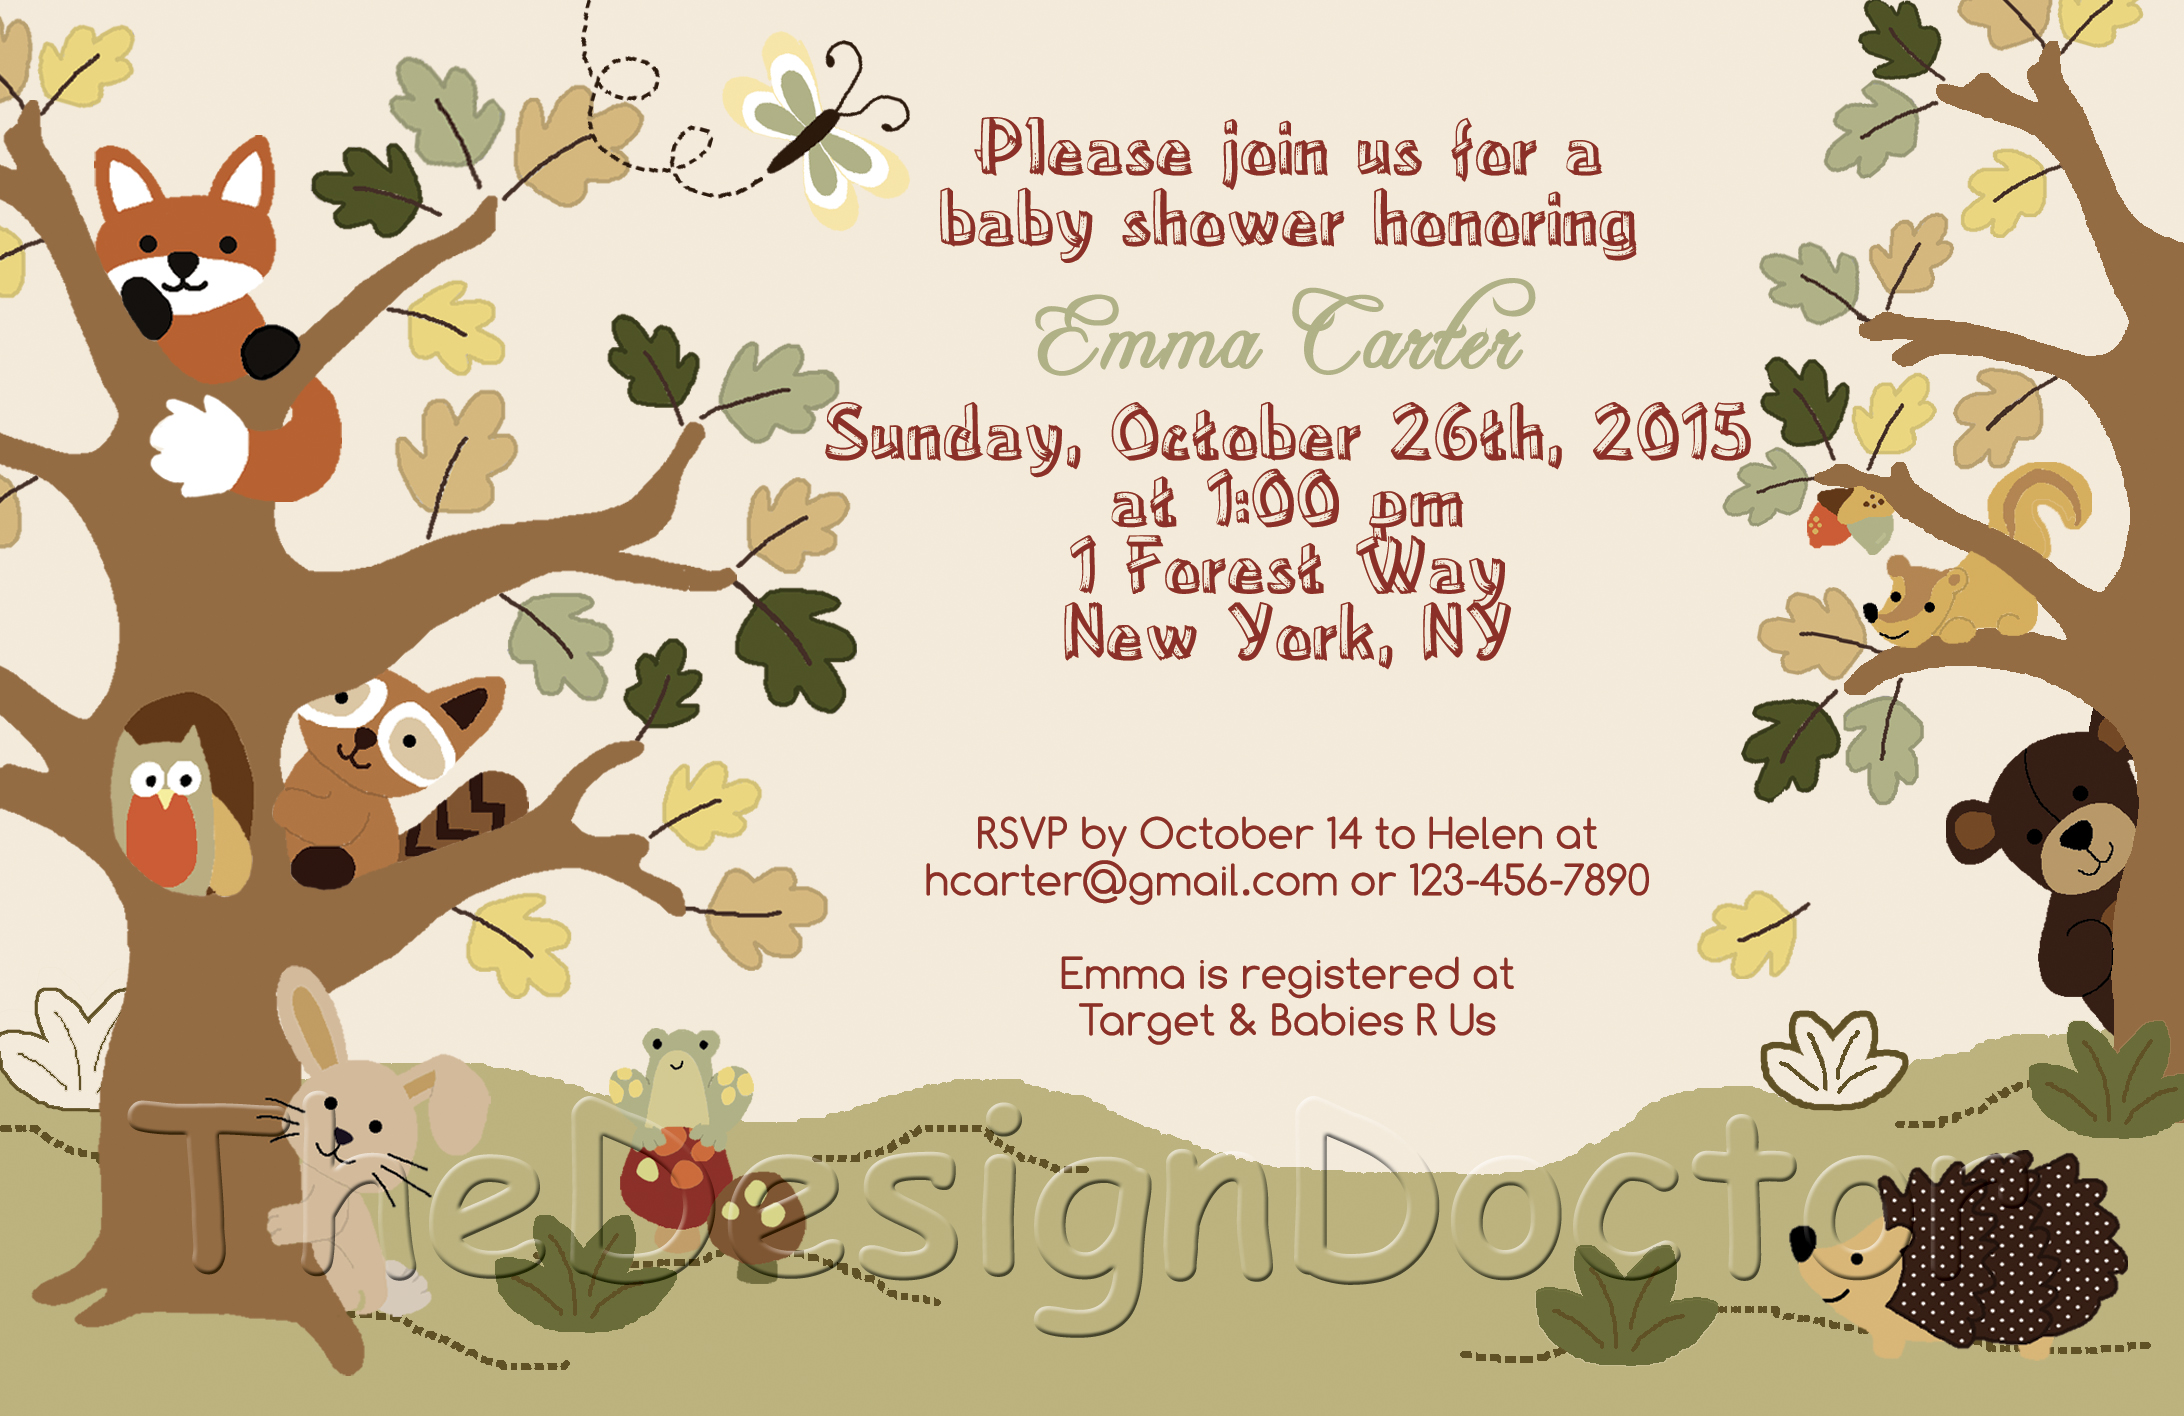 Woodland Animal Echo Forest Friends Theme Baby Shower Invitation And